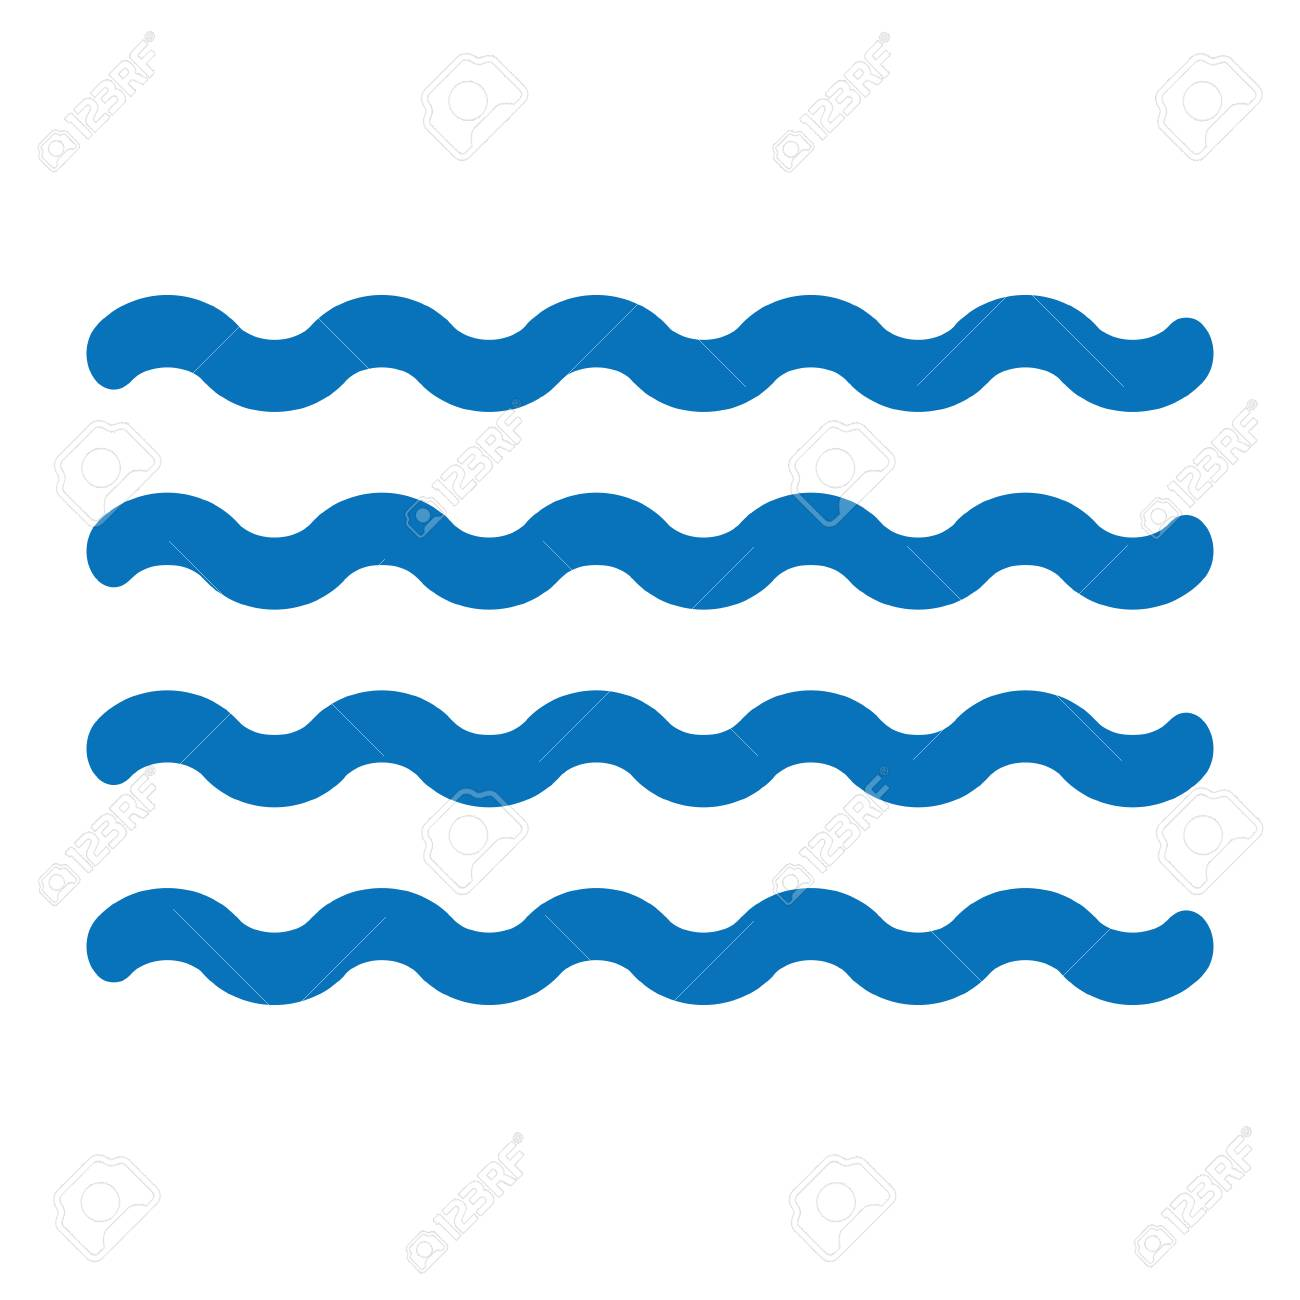 waves vector icon for minimalistic design in white background rh 123rf com wave vector image wave vector image